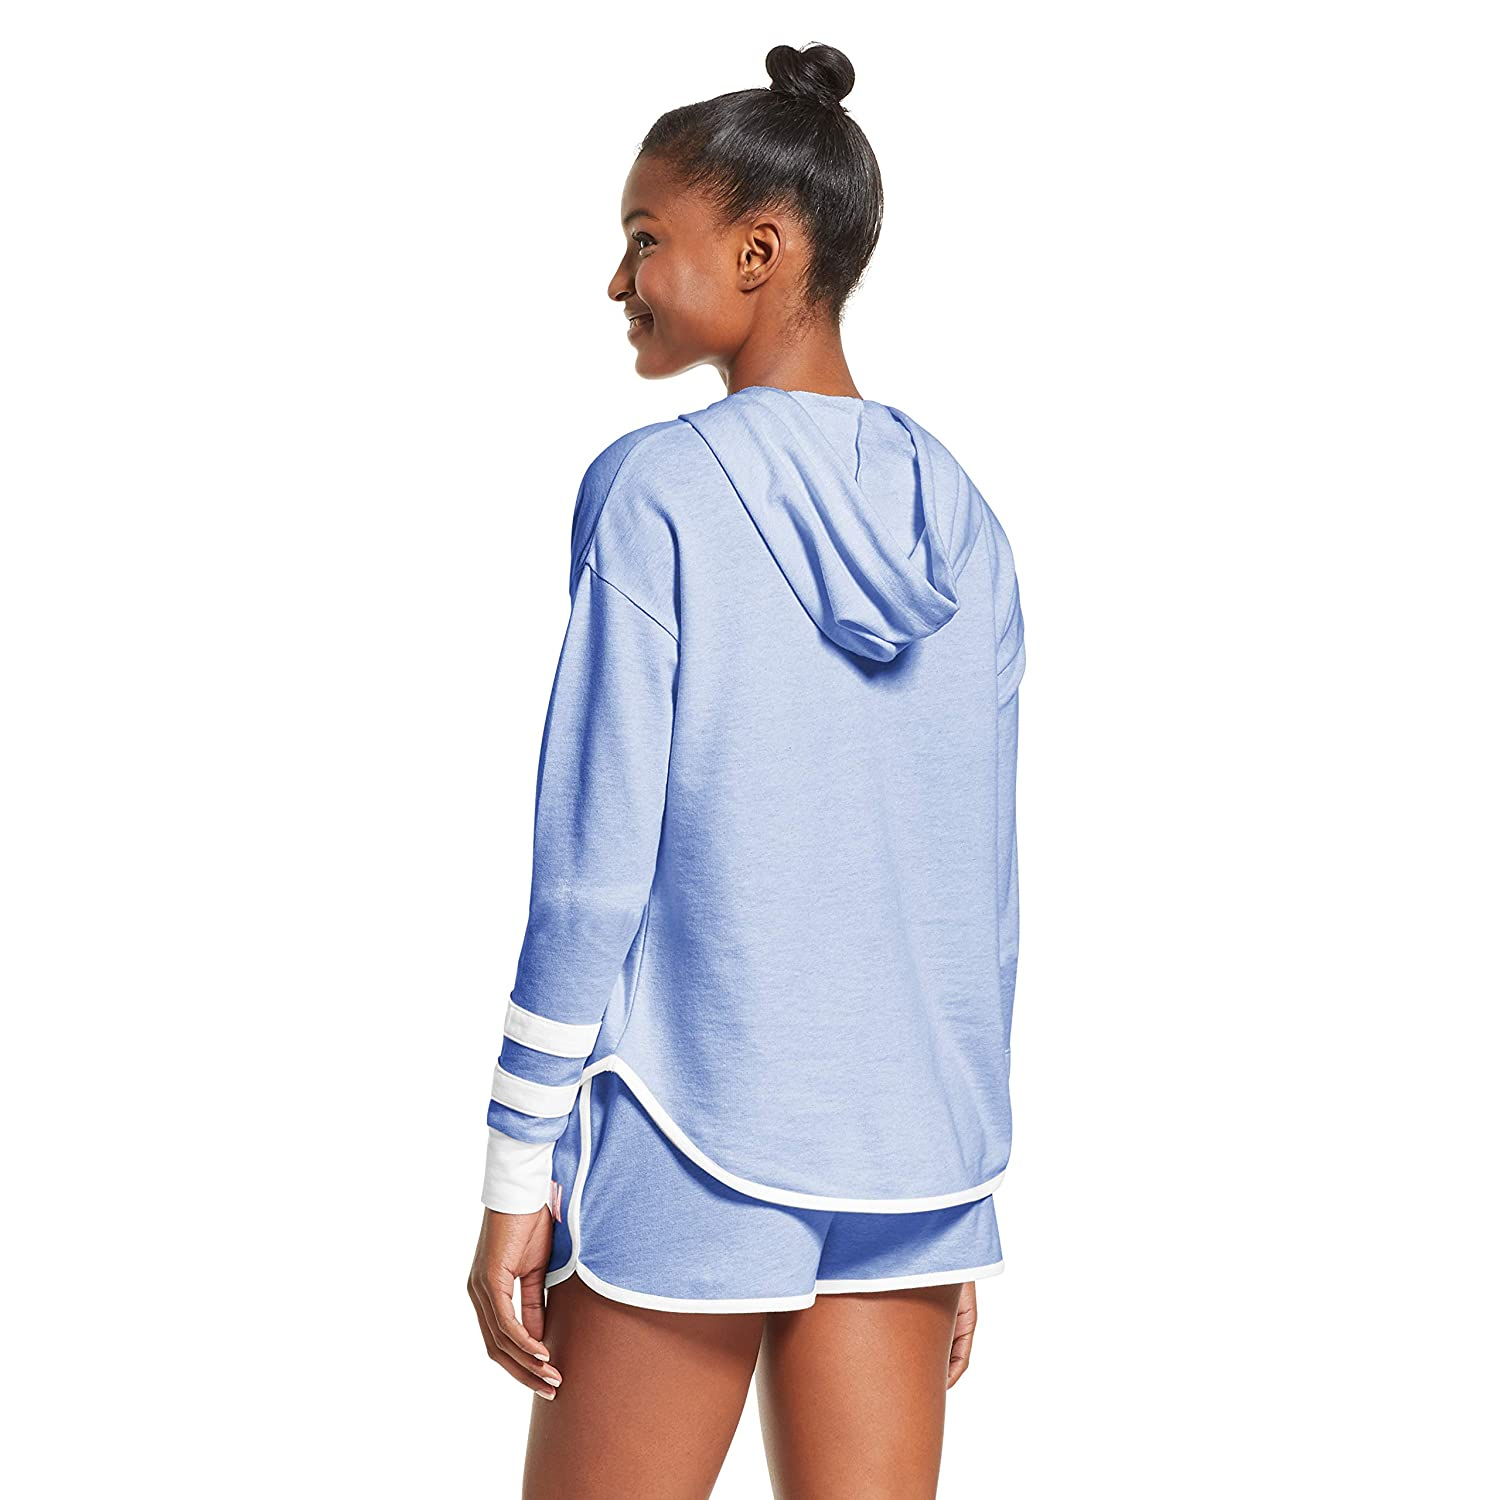 Polo Assn U.S Womens Cuffed Sleeve Athletic Hoodie Sweatshirt and Shorts Pajama Lounge Sleep Set